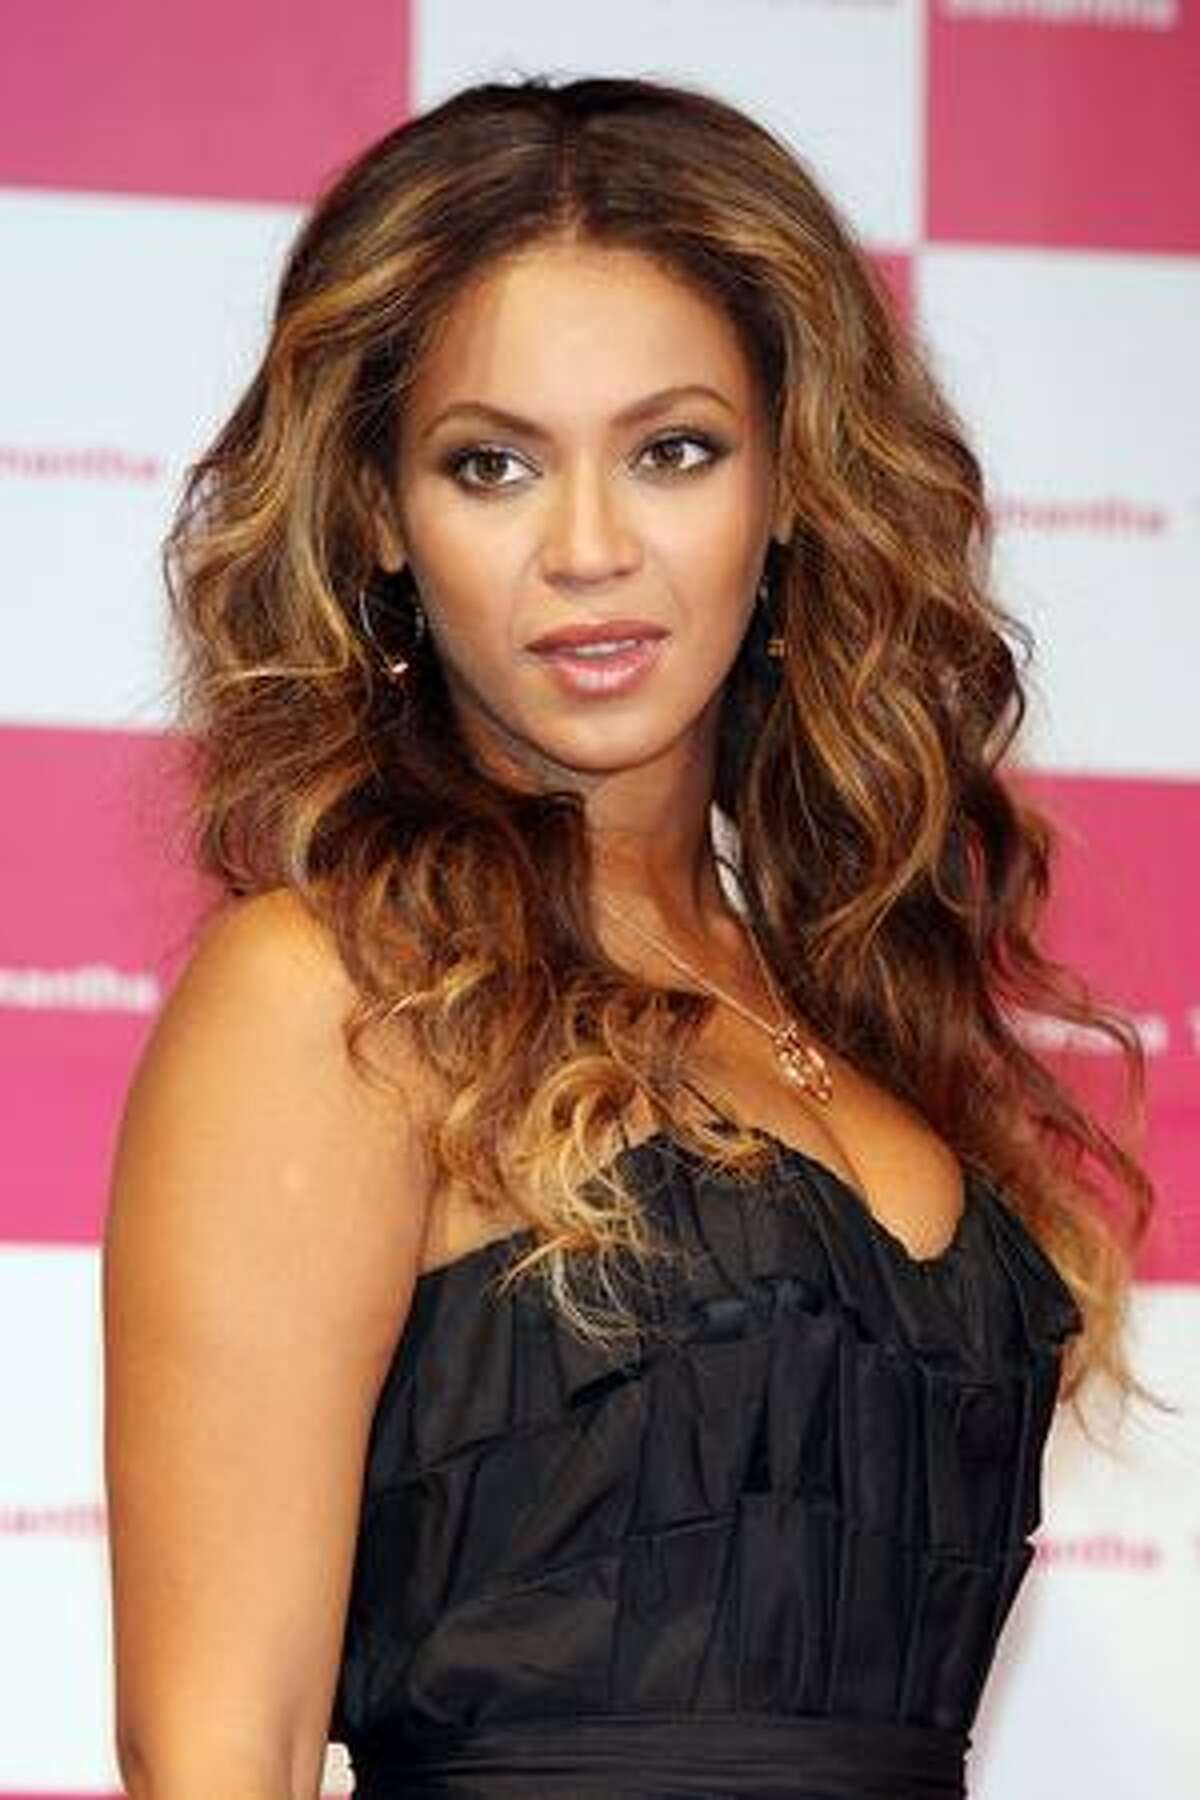 Singer Beyonce attends 'Samantha Thavasa/Special Meet and Greet with Beyonce' at Studio Mouris Roppongi in Tokyo, Japan.